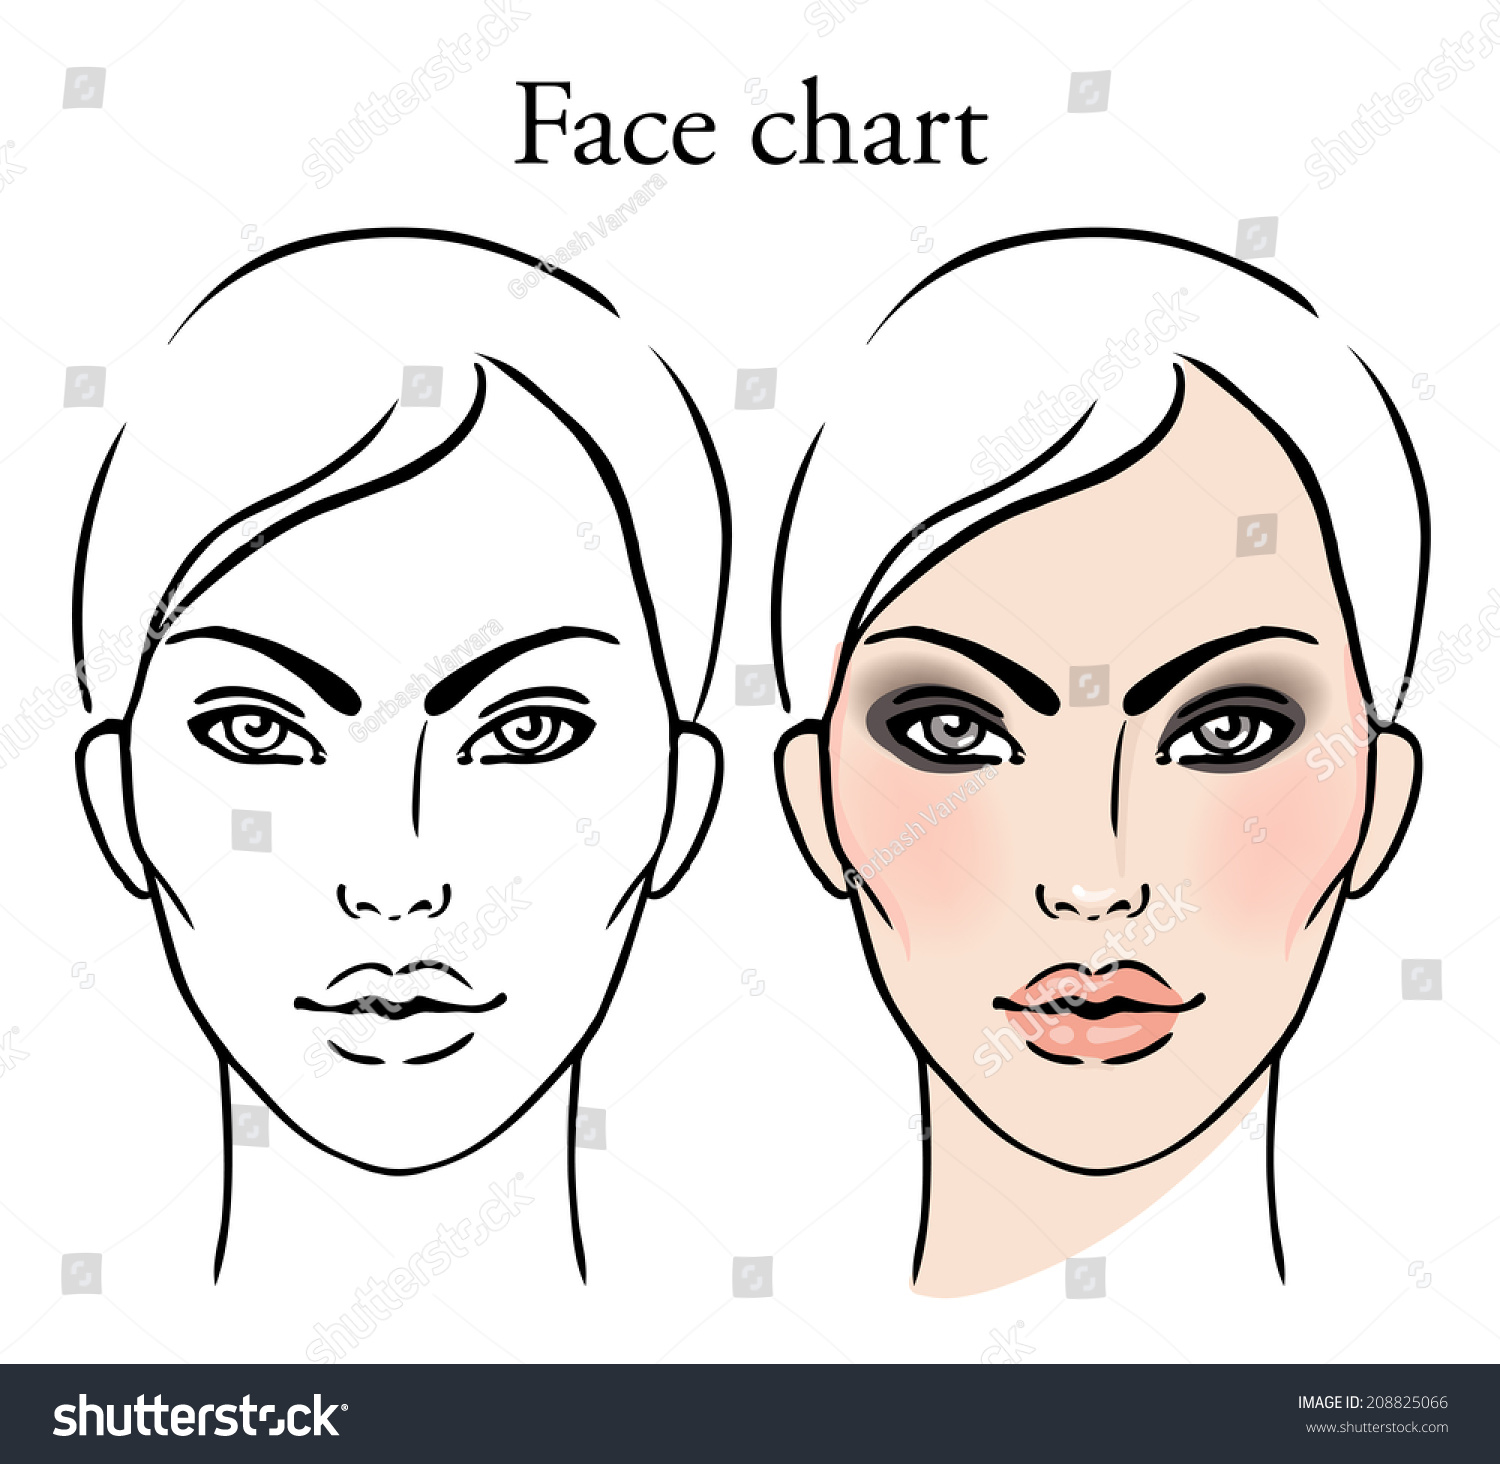 4272 Makeup Artist Stock Vector Illustration And Royalty